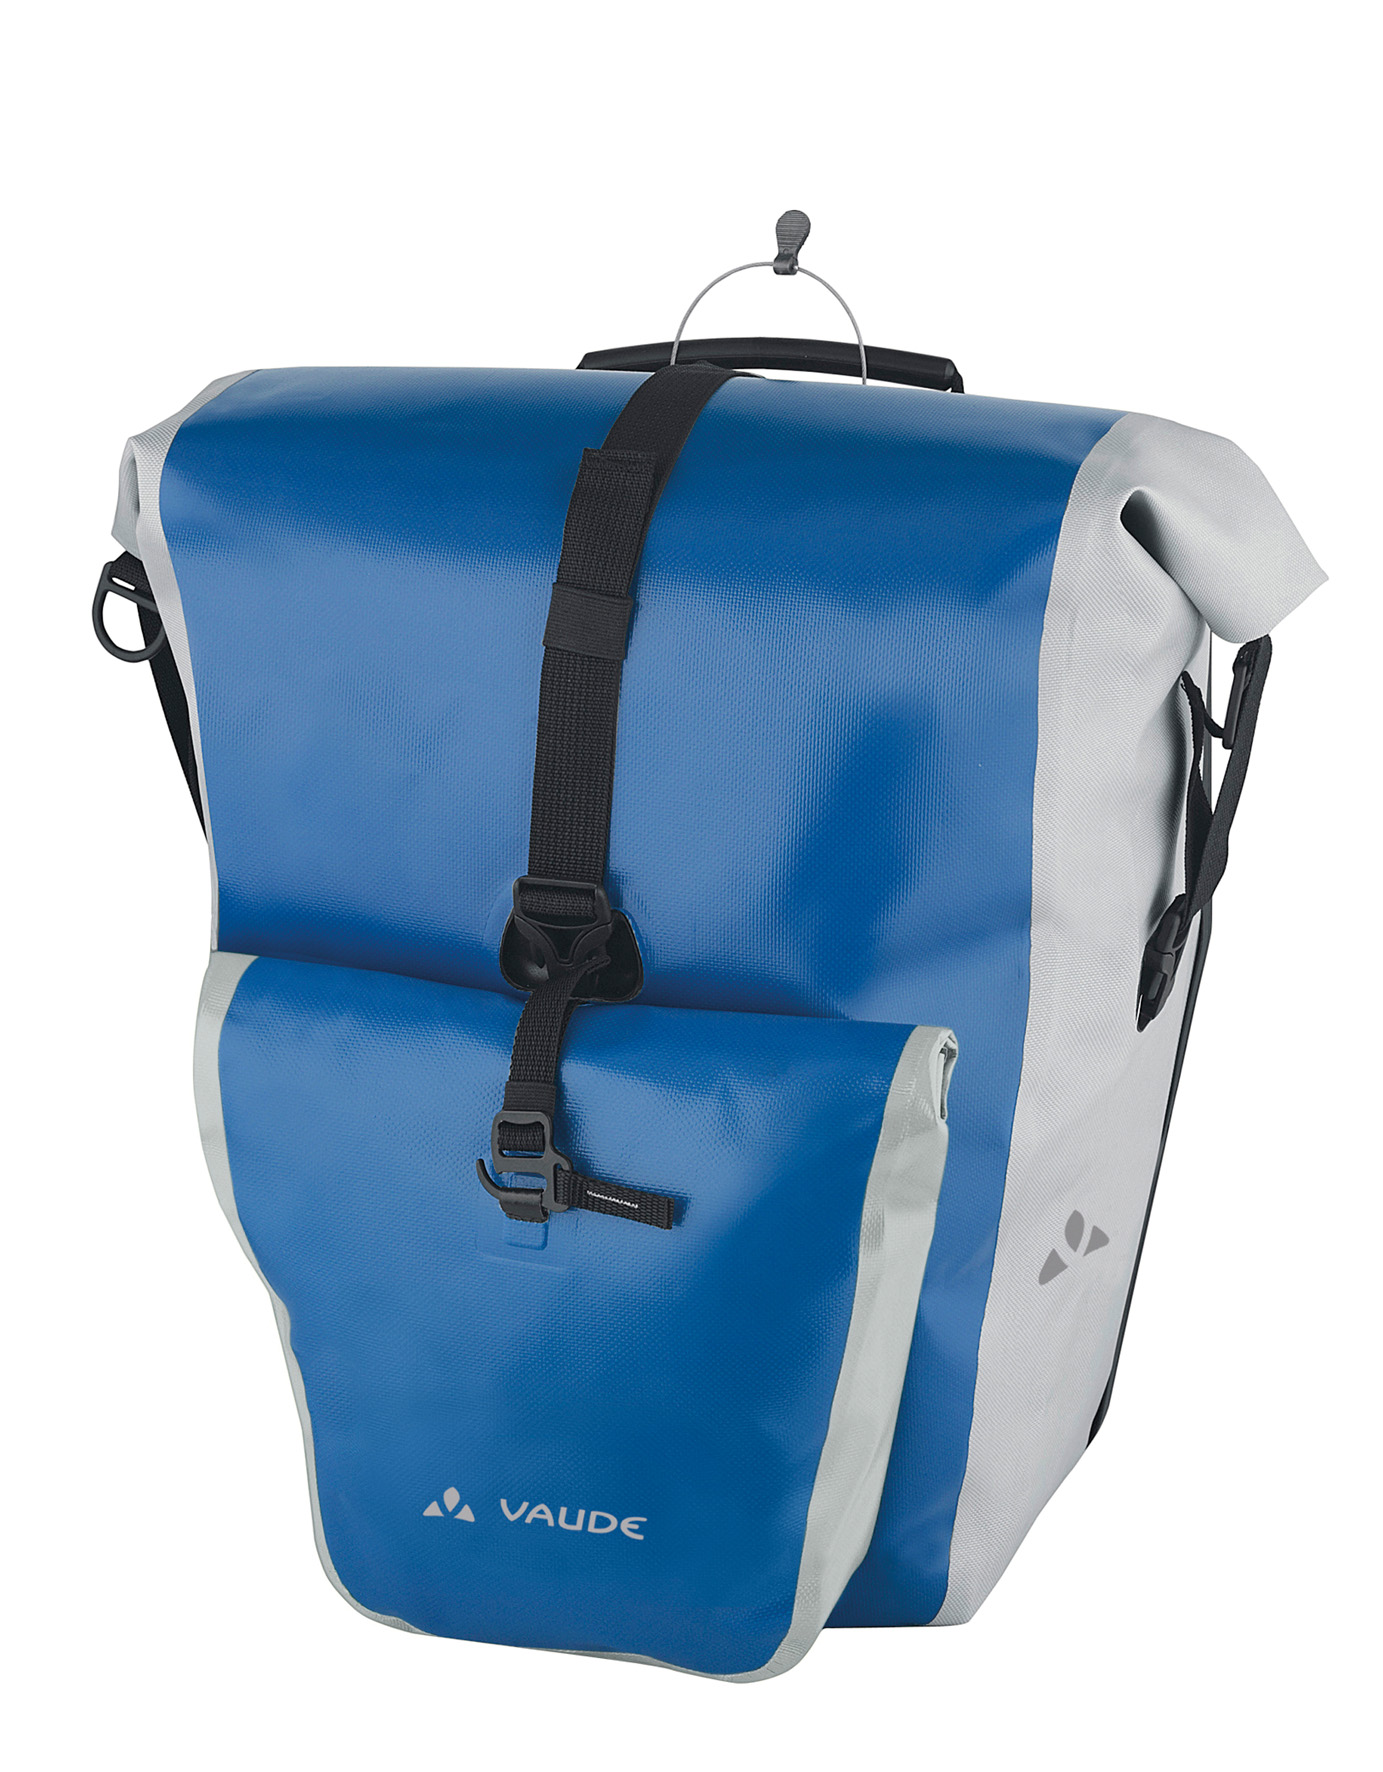 VAUDE Aqua Back Plus blue/metallic  - schneider-sports